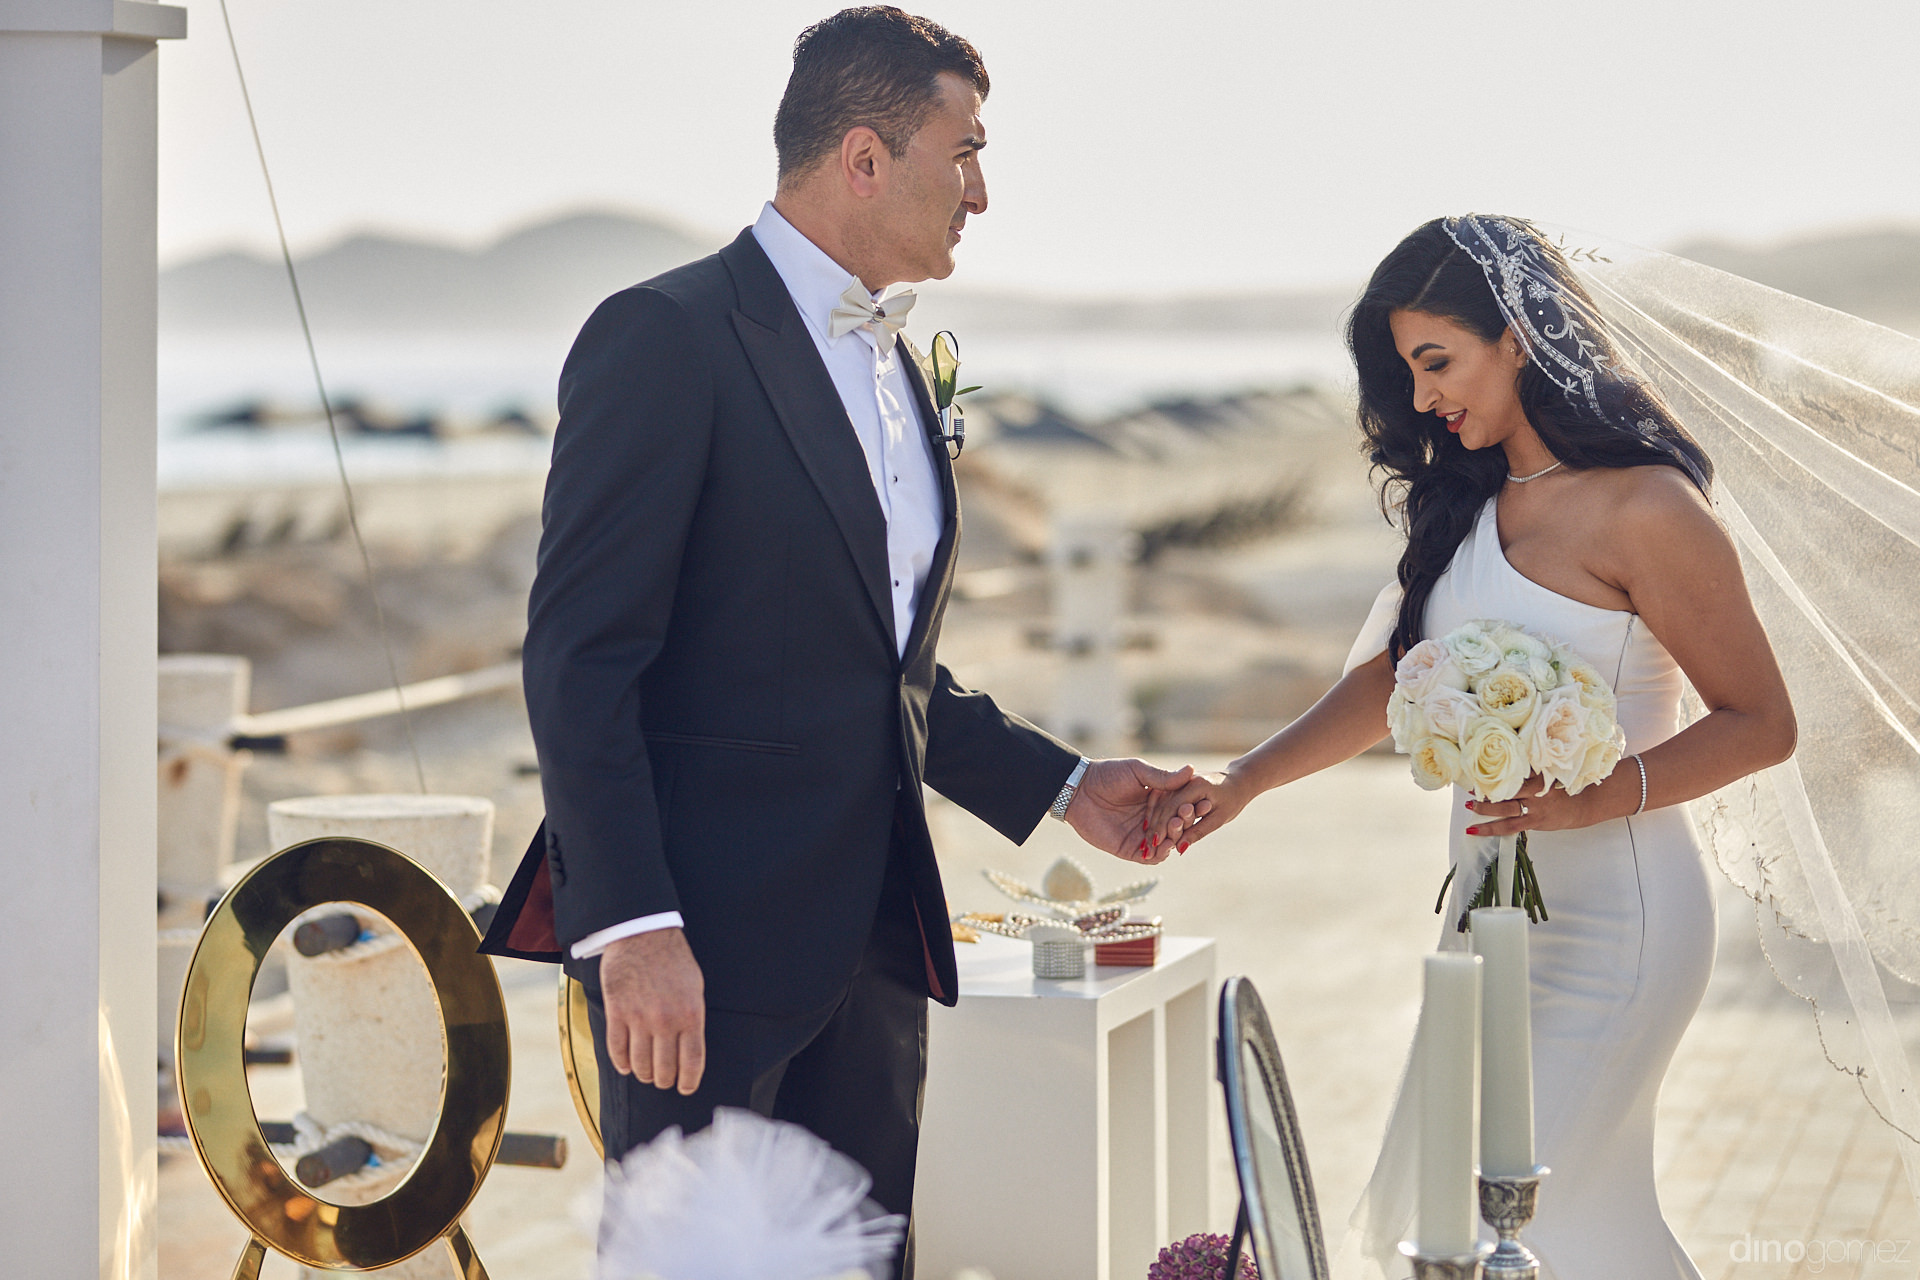 Persian Wedding Ceremony Bride And Groom On The Beach